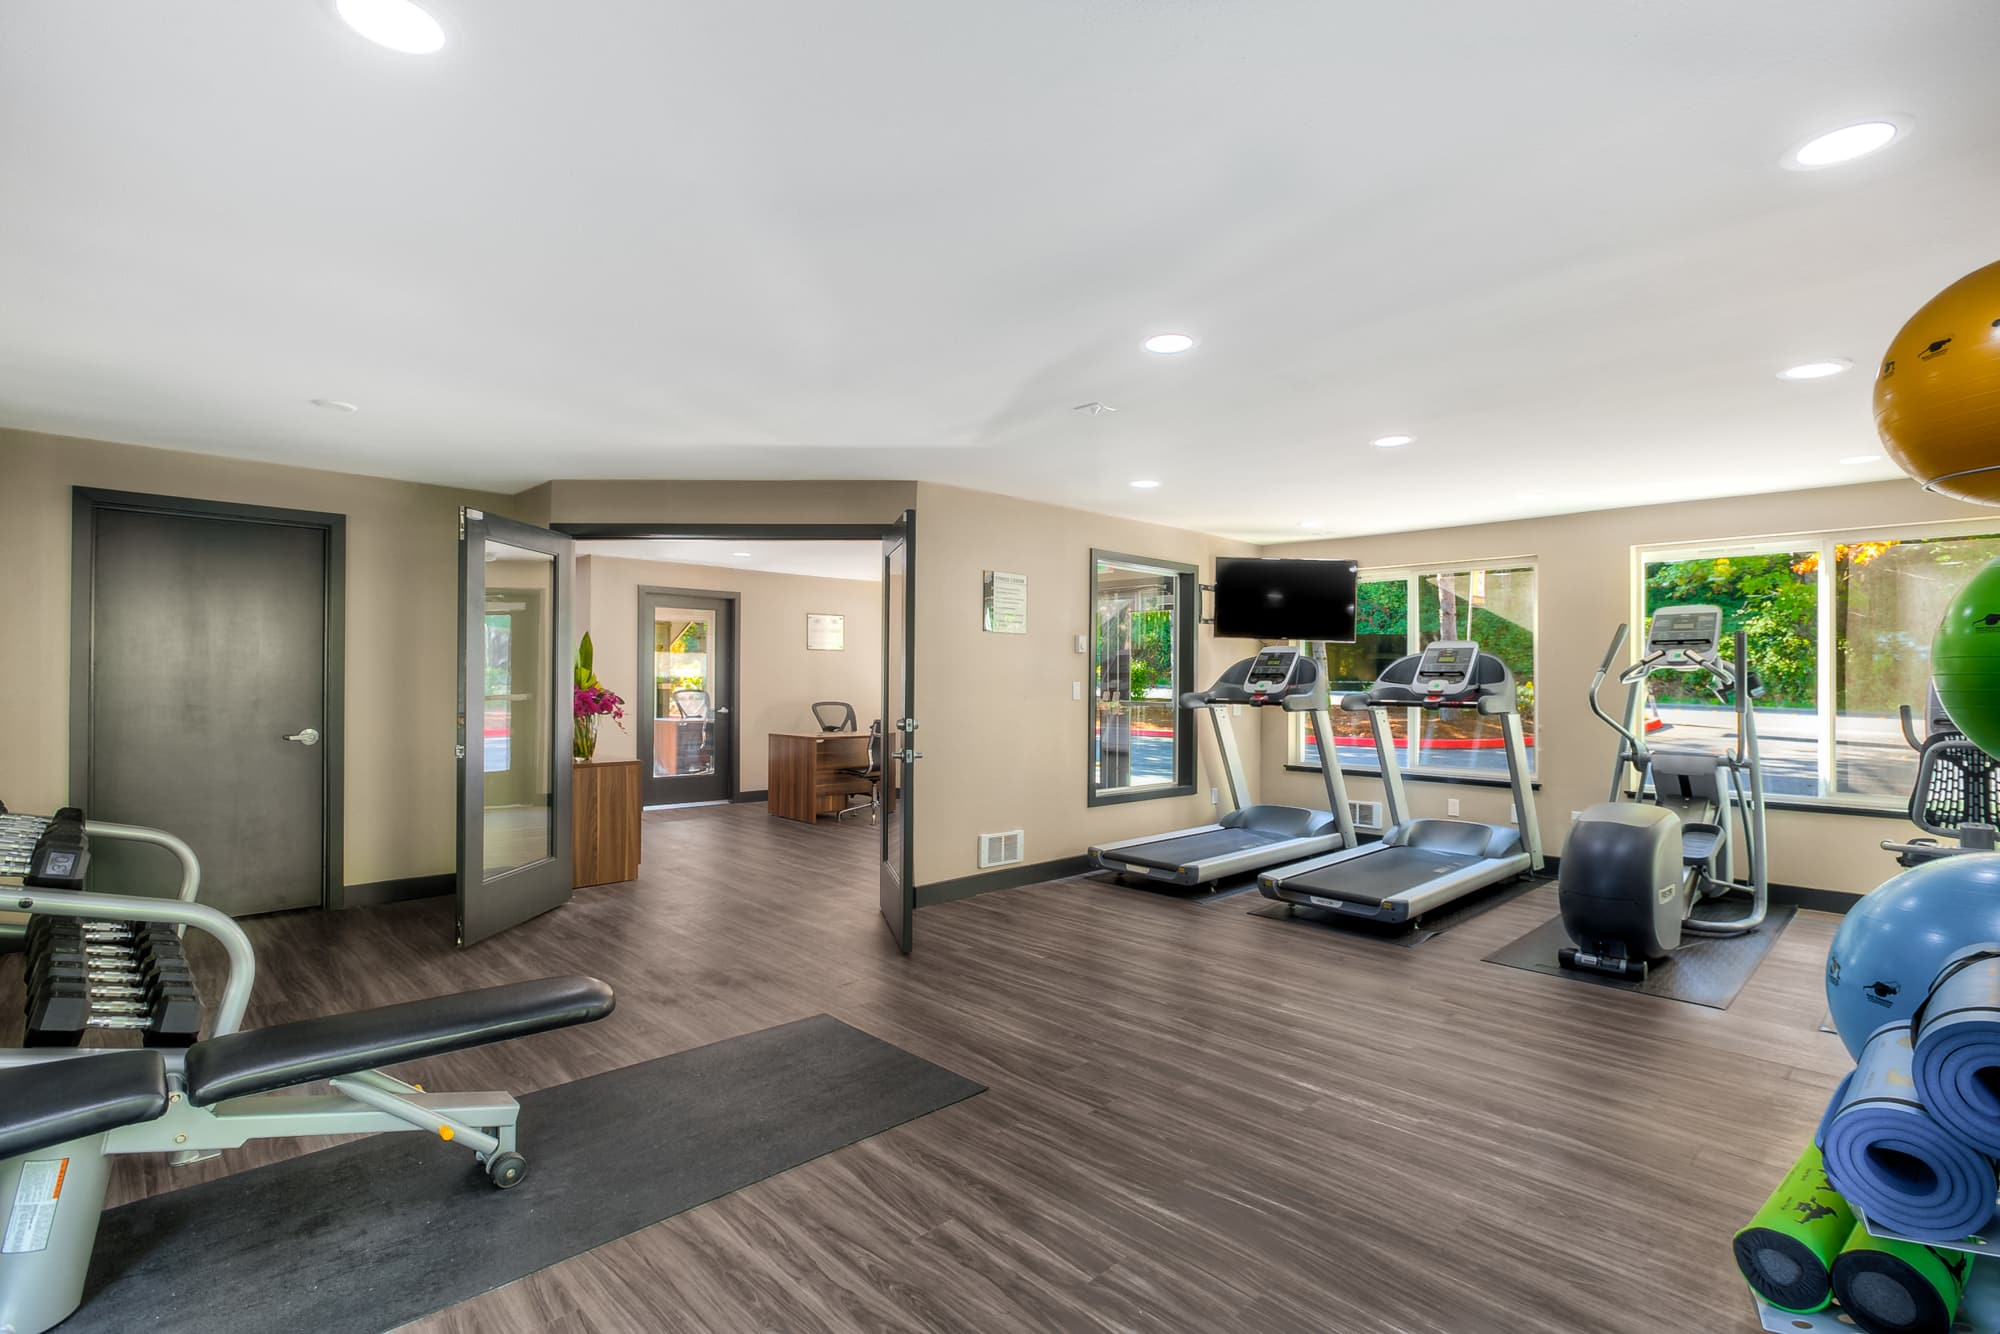 Renovated fitness center at Karbon Apartments in Newcastle, Washington